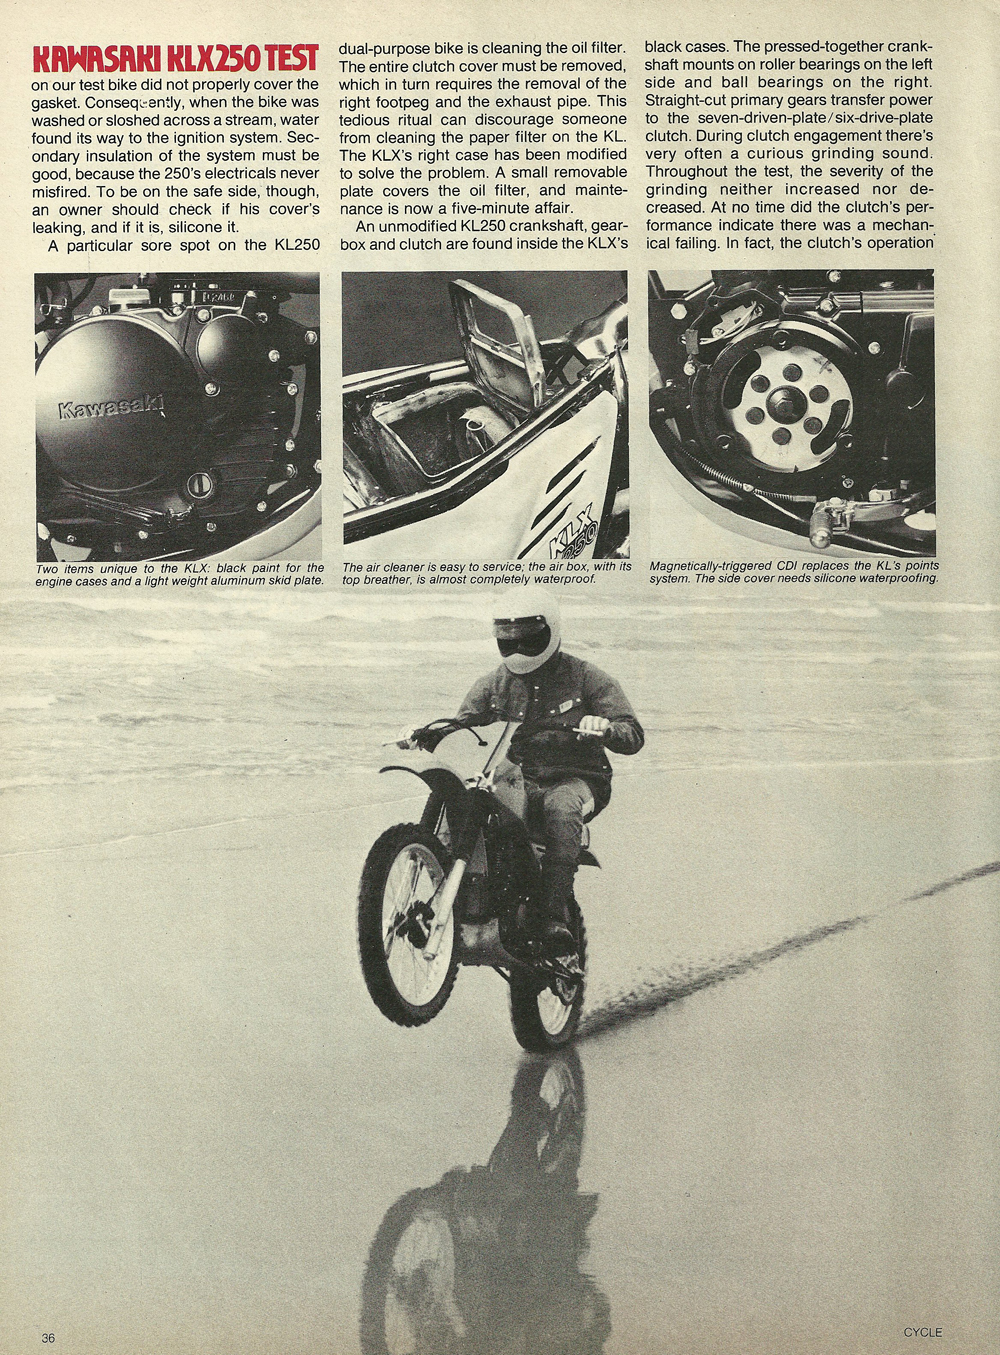 1979 Kawasaki KLX250 off road test 7.jpg